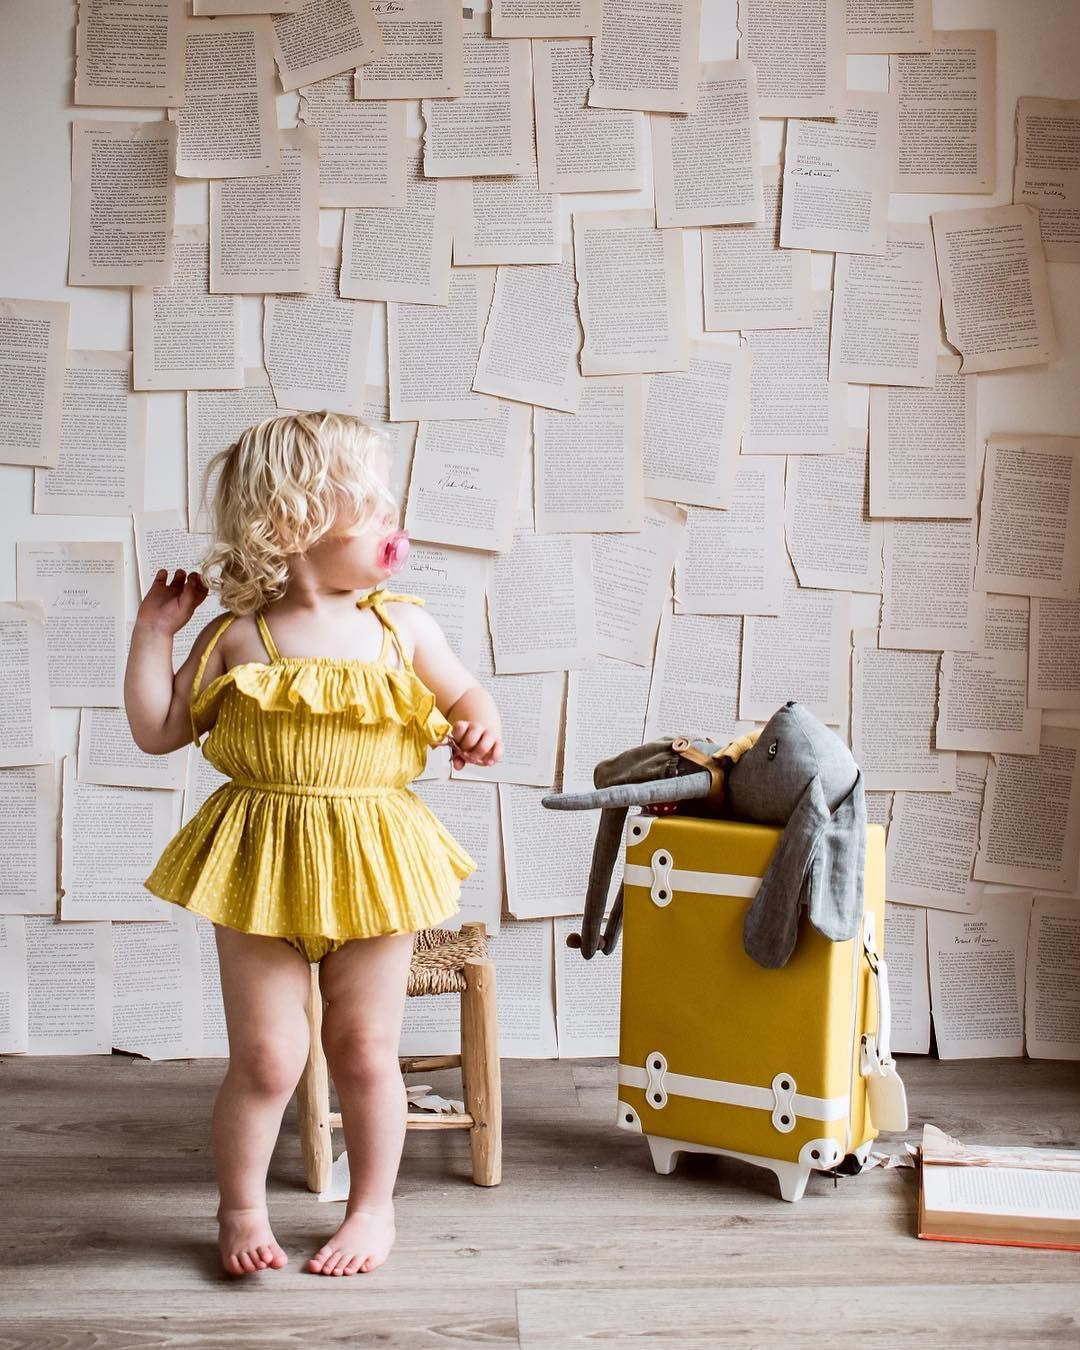 f4e9e68e8 Our beloved Olli Ella See-ya Suitcase is one of Oprah s Favourite Things  this year